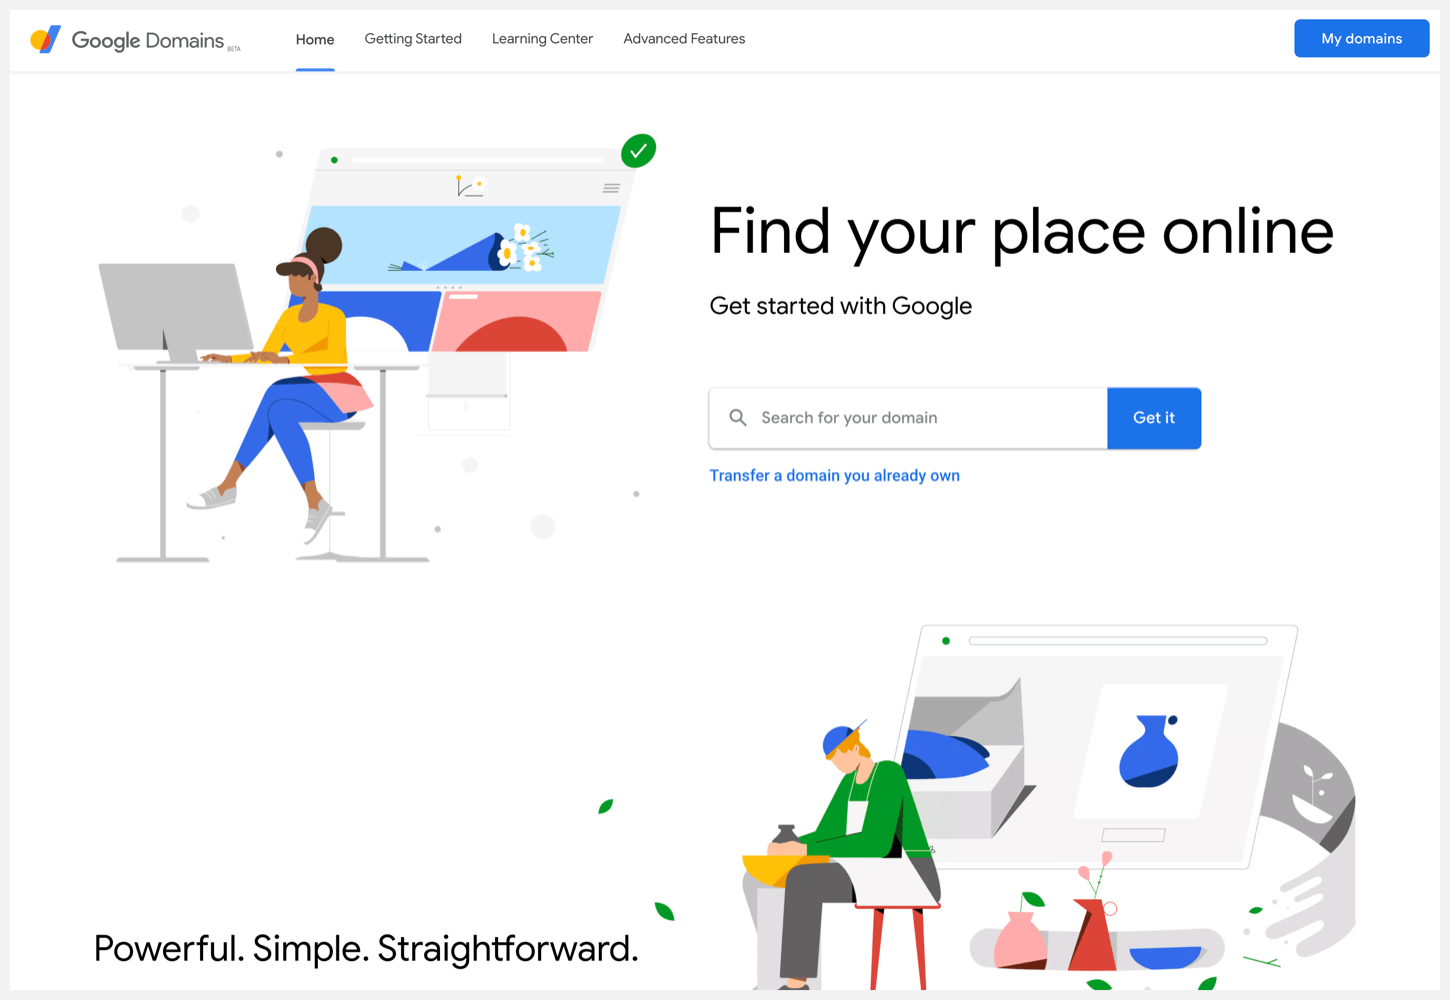 The sign up page for Google Domains.